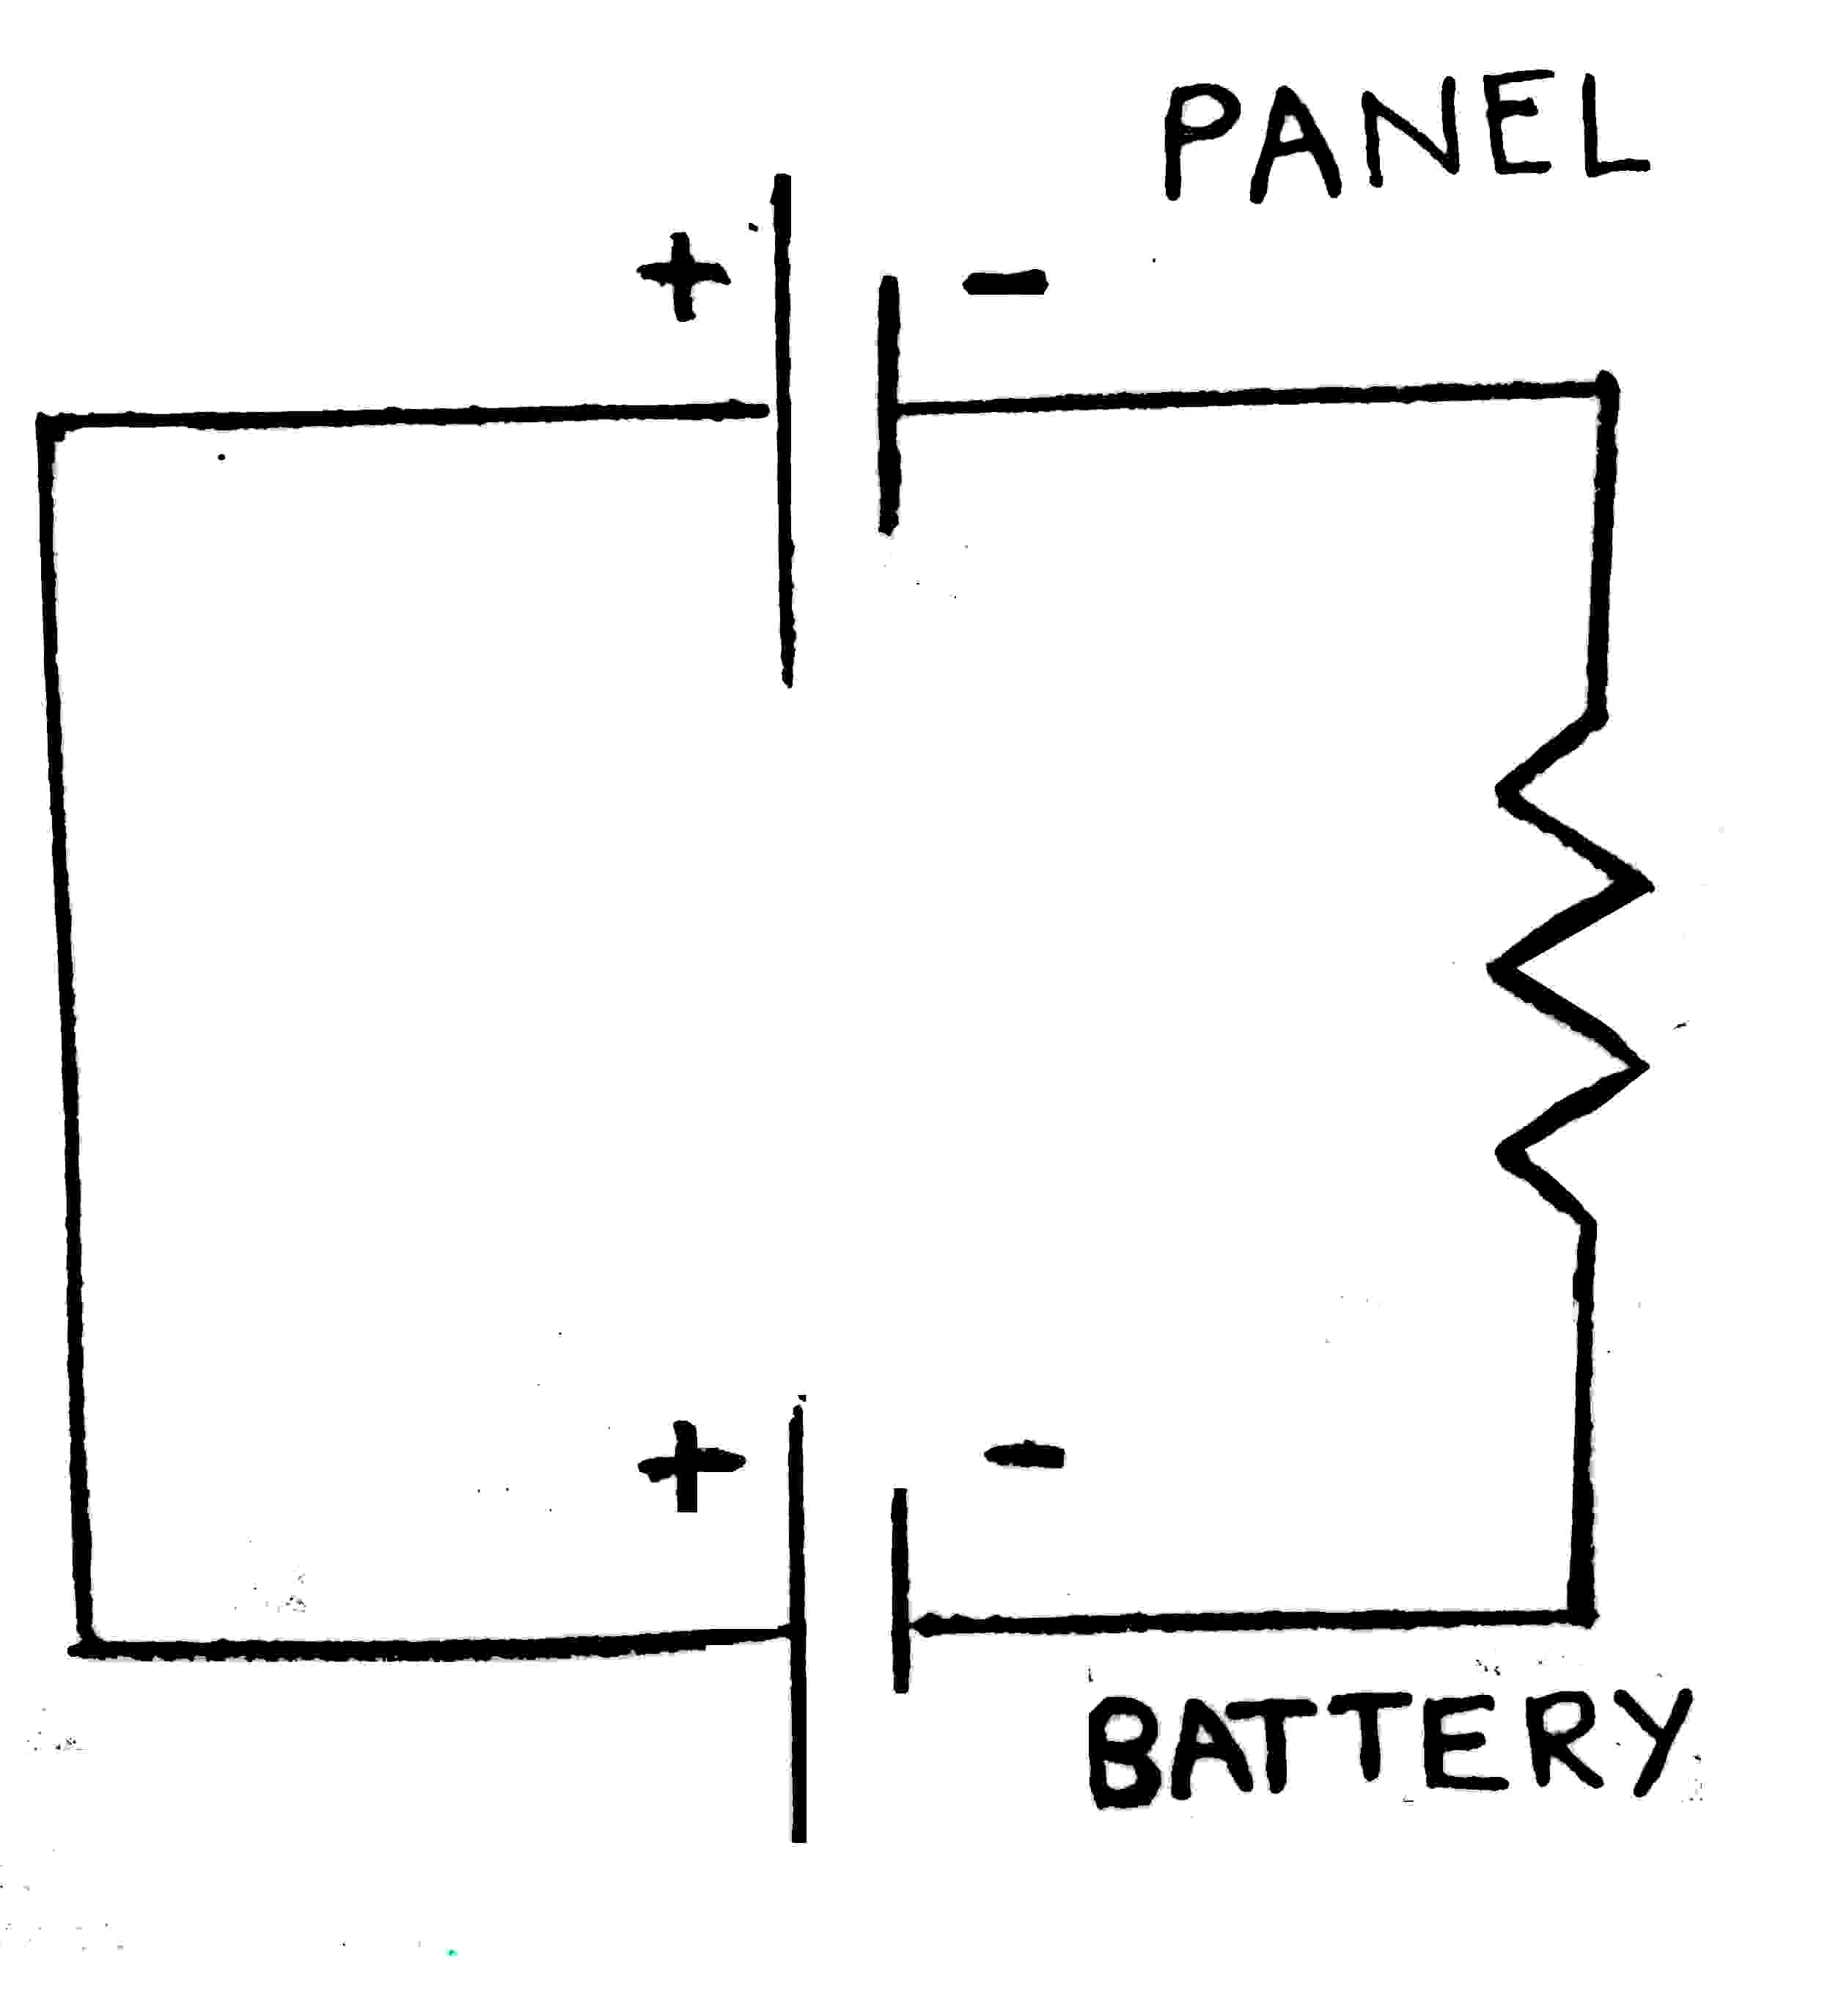 amplifier circuit diagram build electronic circuits electrical